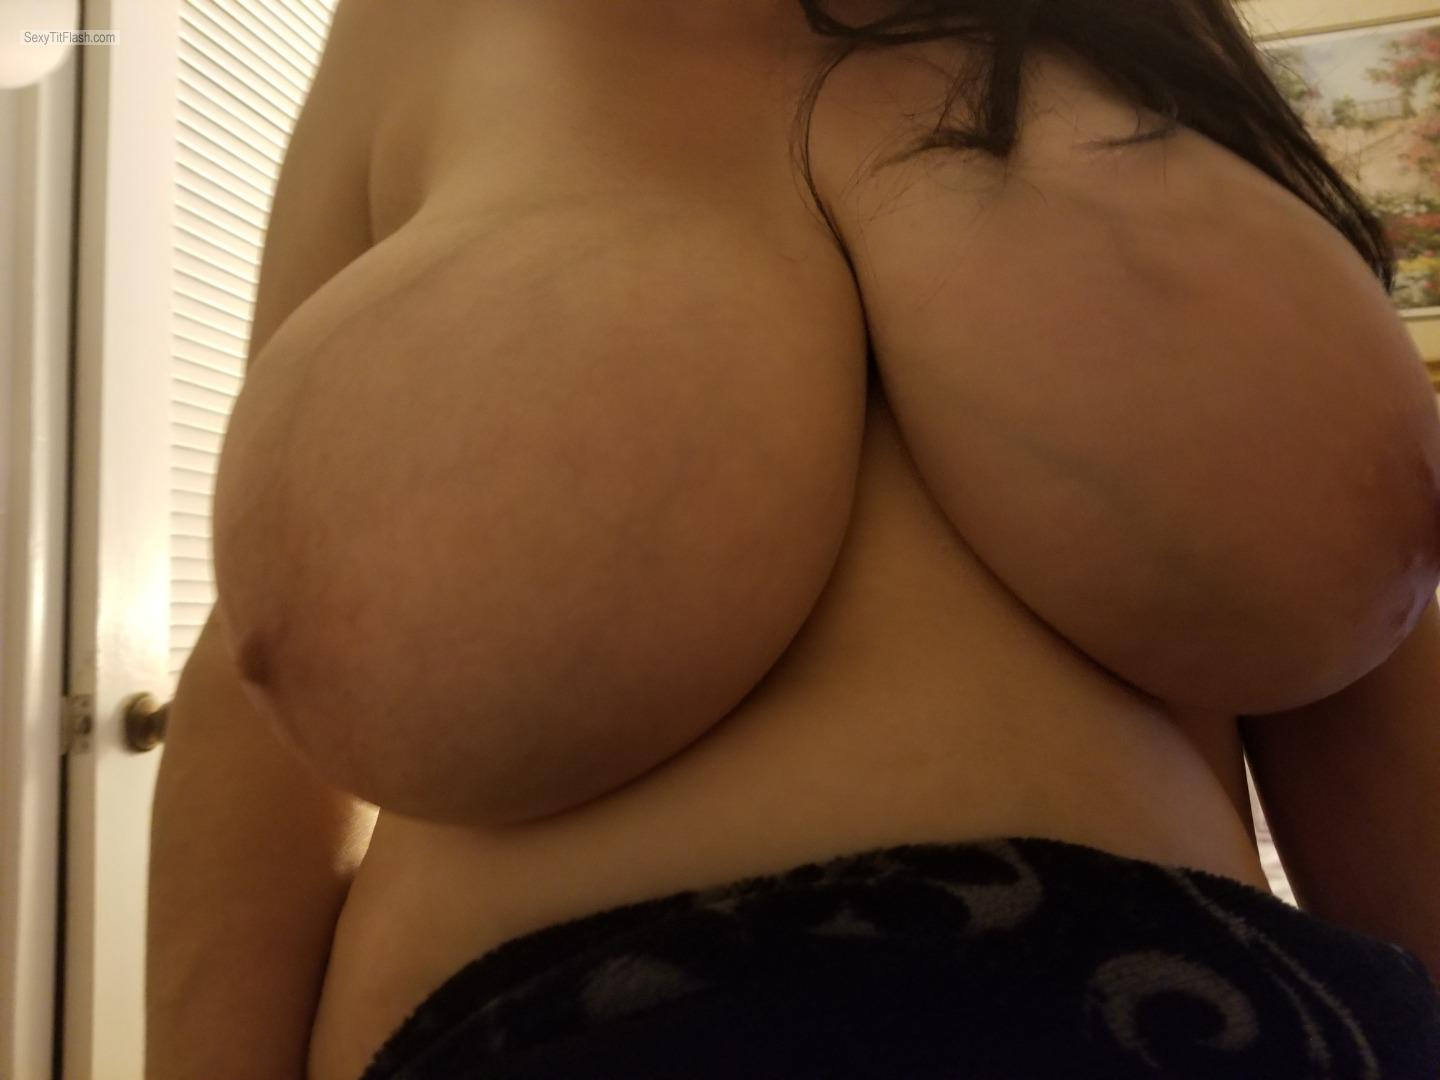 Tit Flash: Ex-Girlfriend's Extremely Big Tits (Selfie) - Maria Serna from United States